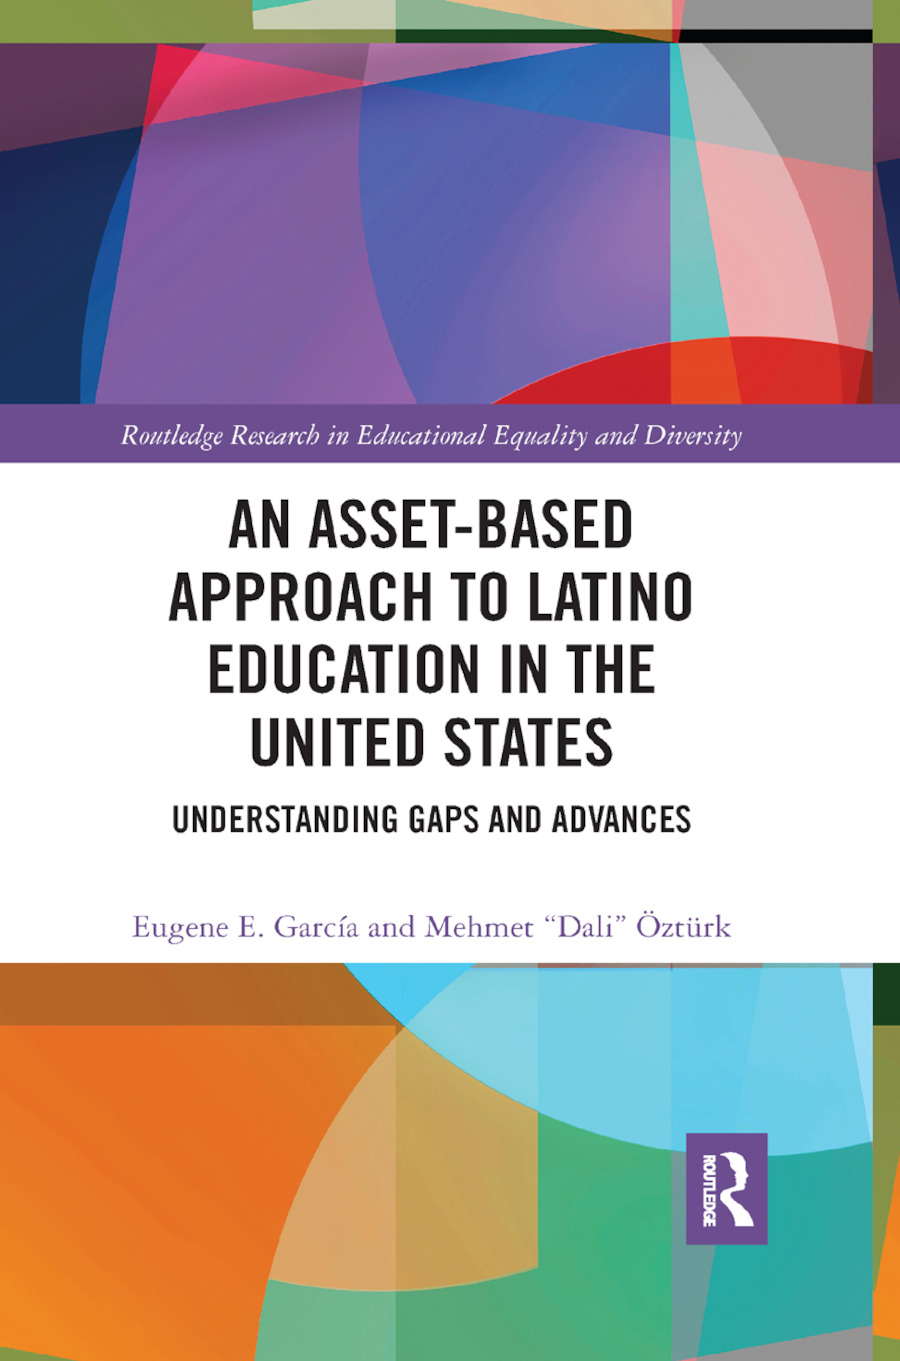 An Asset-Based Approach to Latino Education in the United States: Understanding Gaps and Advances book cover